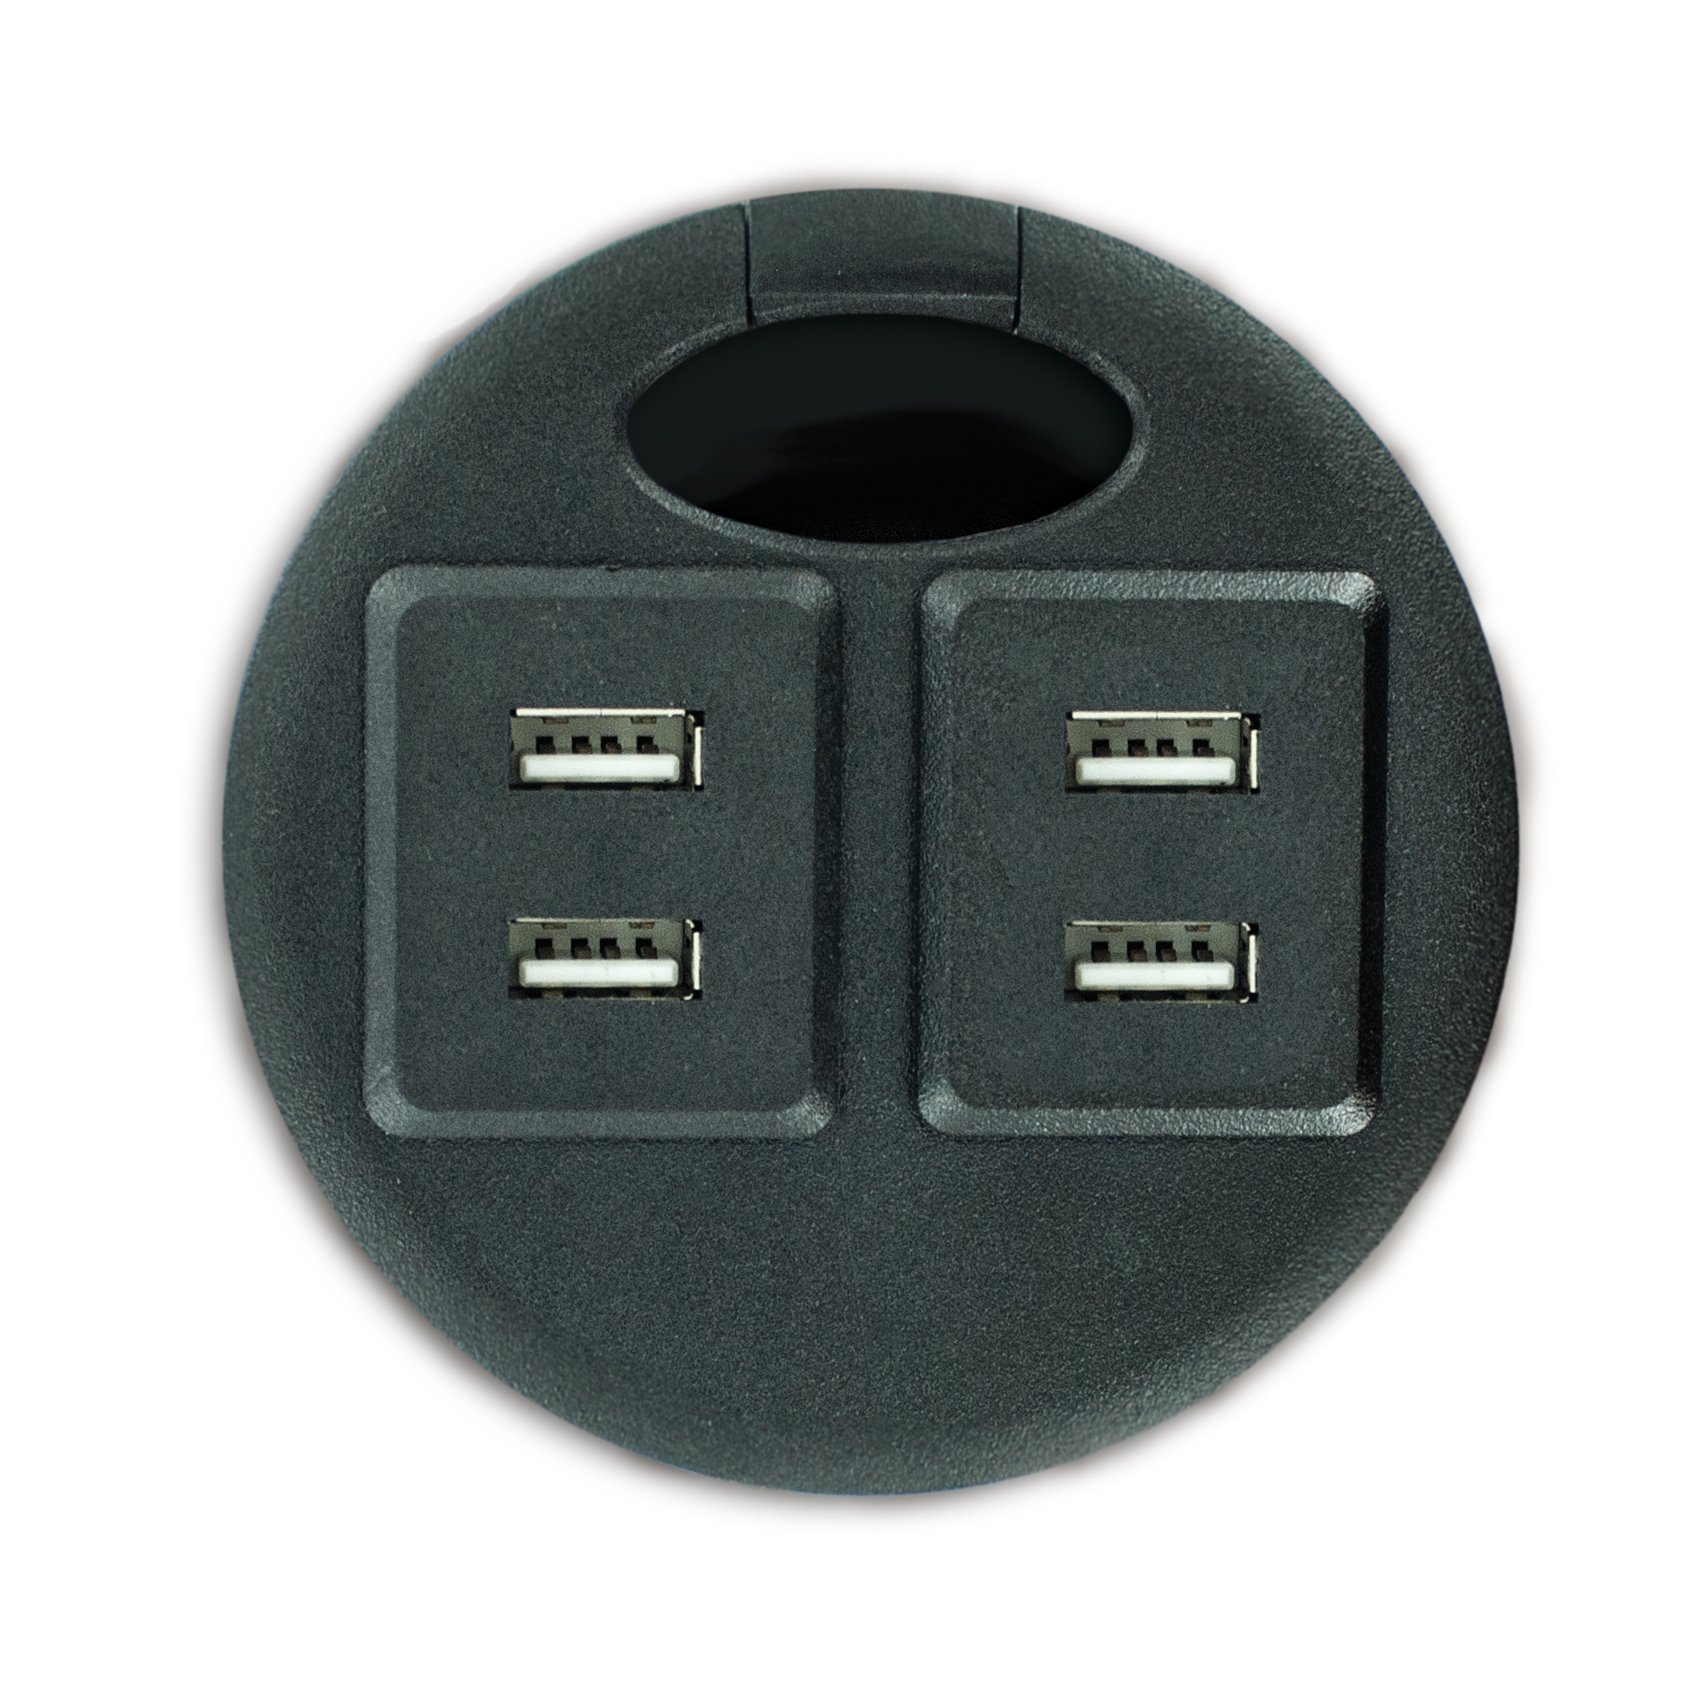 Outwater Industries 120V 4 USB 2.0/ 2A per Port Fast Charging Electrical Grommet Power Center Station/Data Hub PDG-FE-040-BK with 2 3 ft. USB Cables with detachable USB Adaptors